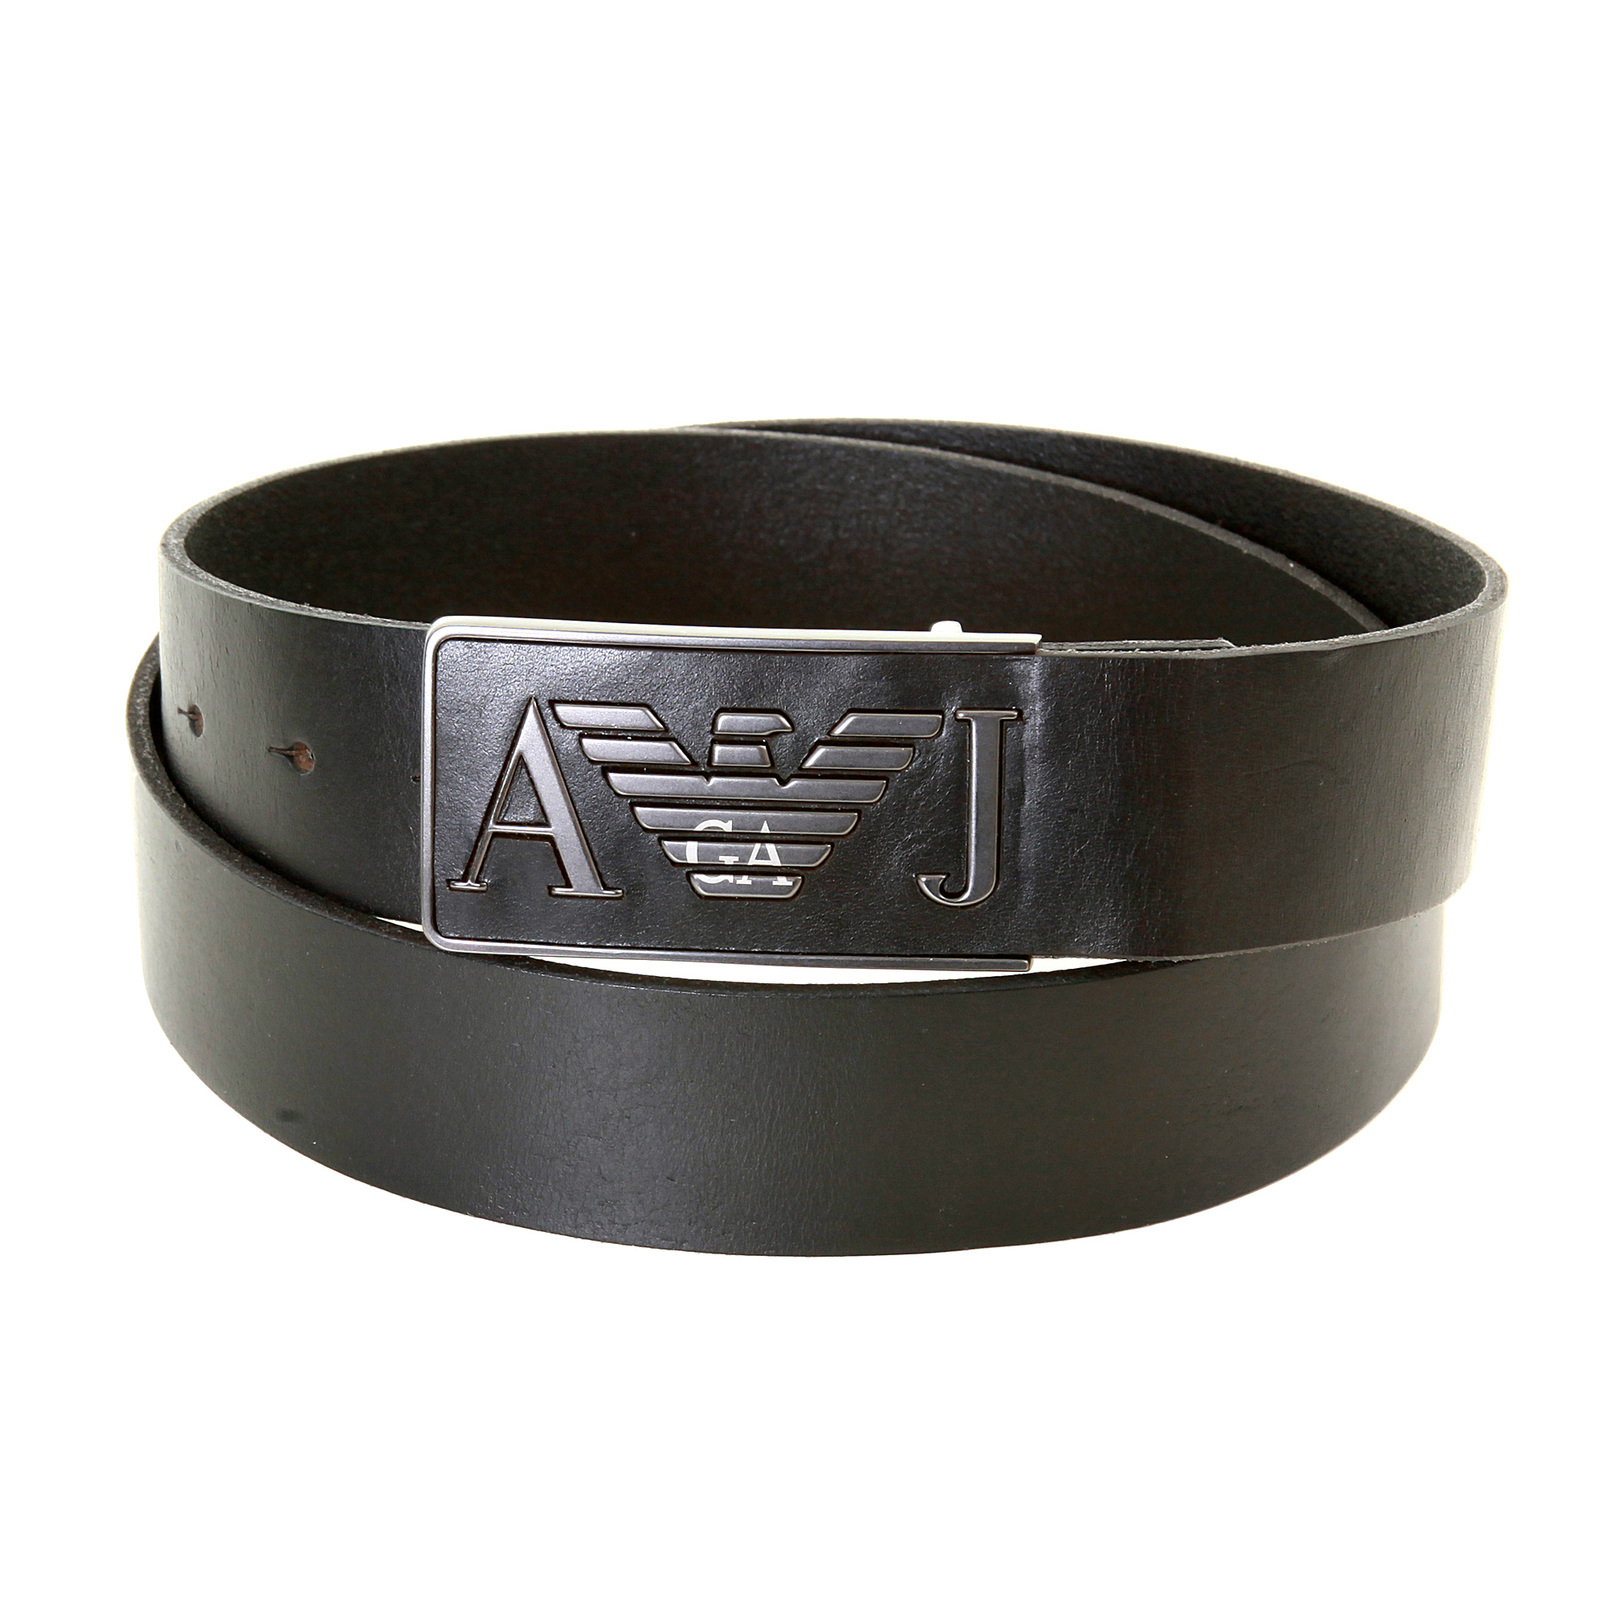 Armani Jeans mens black leather casual belt T6115 D6 AJM0477 at Togged Clothing